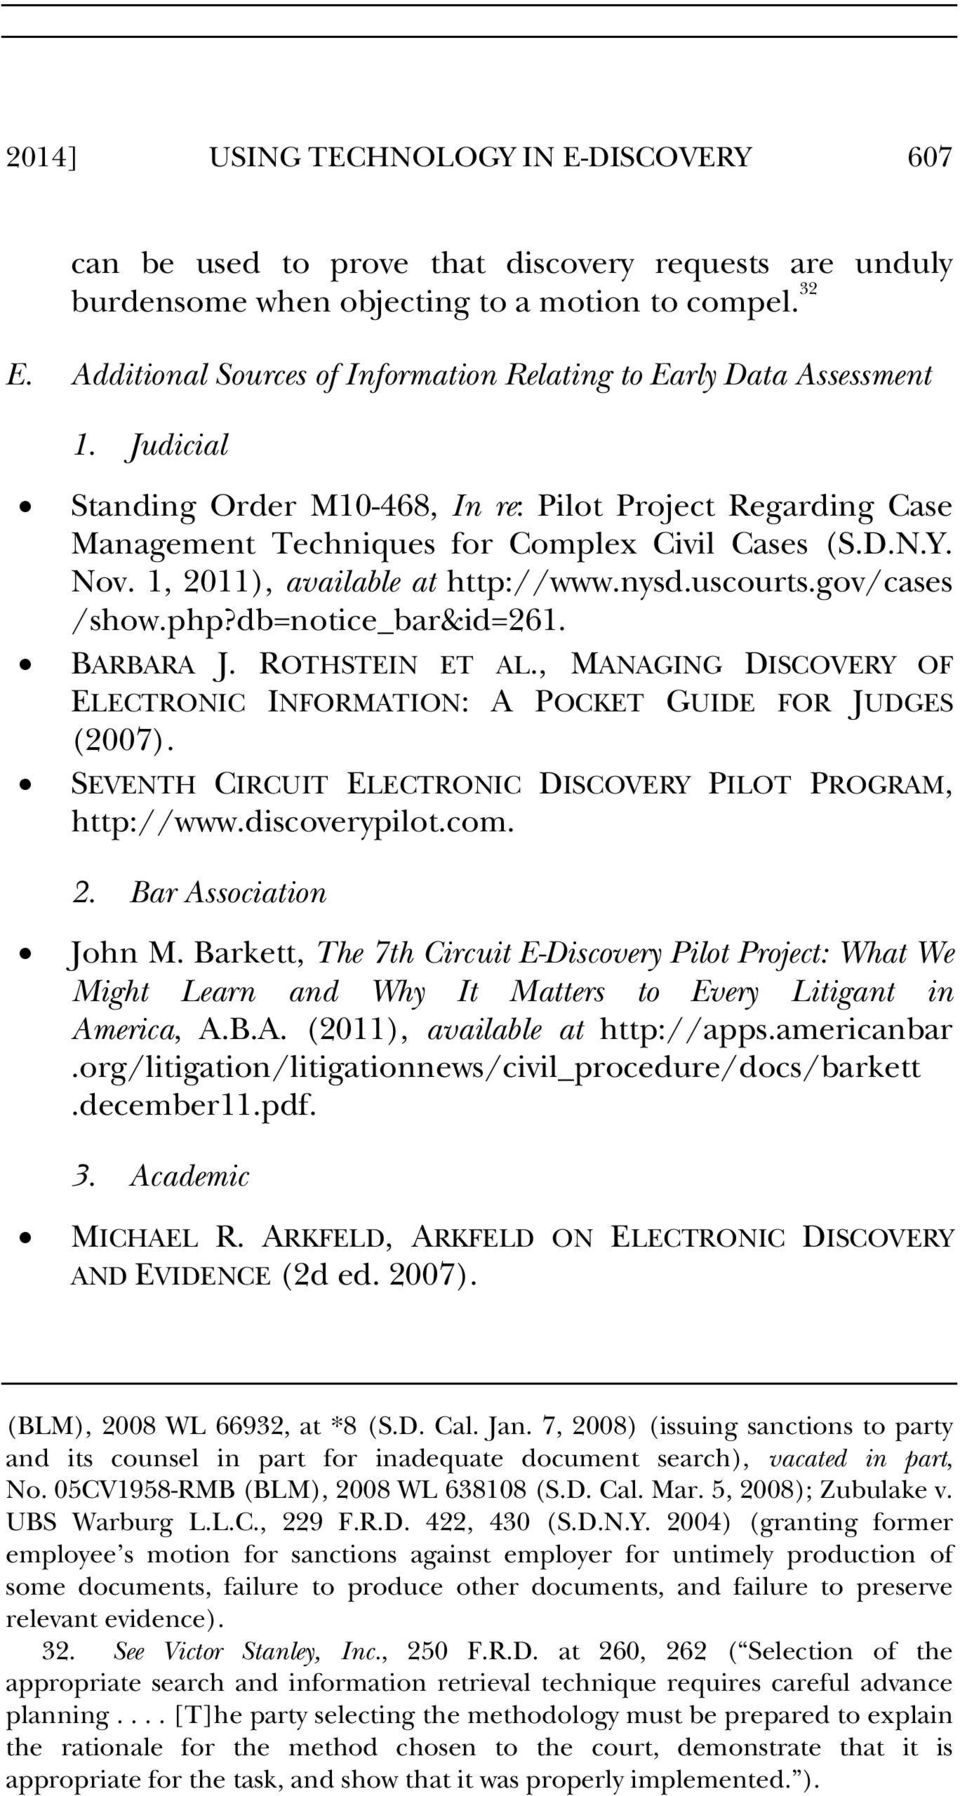 1, 2011), available at http://www.nysd.uscourts.gov/cases /show.php?db=notice_bar&id=261. BARBARA J. ROTHSTEIN ET AL., MANAGING DISCOVERY OF ELECTRONIC INFORMATION: A POCKET GUIDE FOR JUDGES (2007).